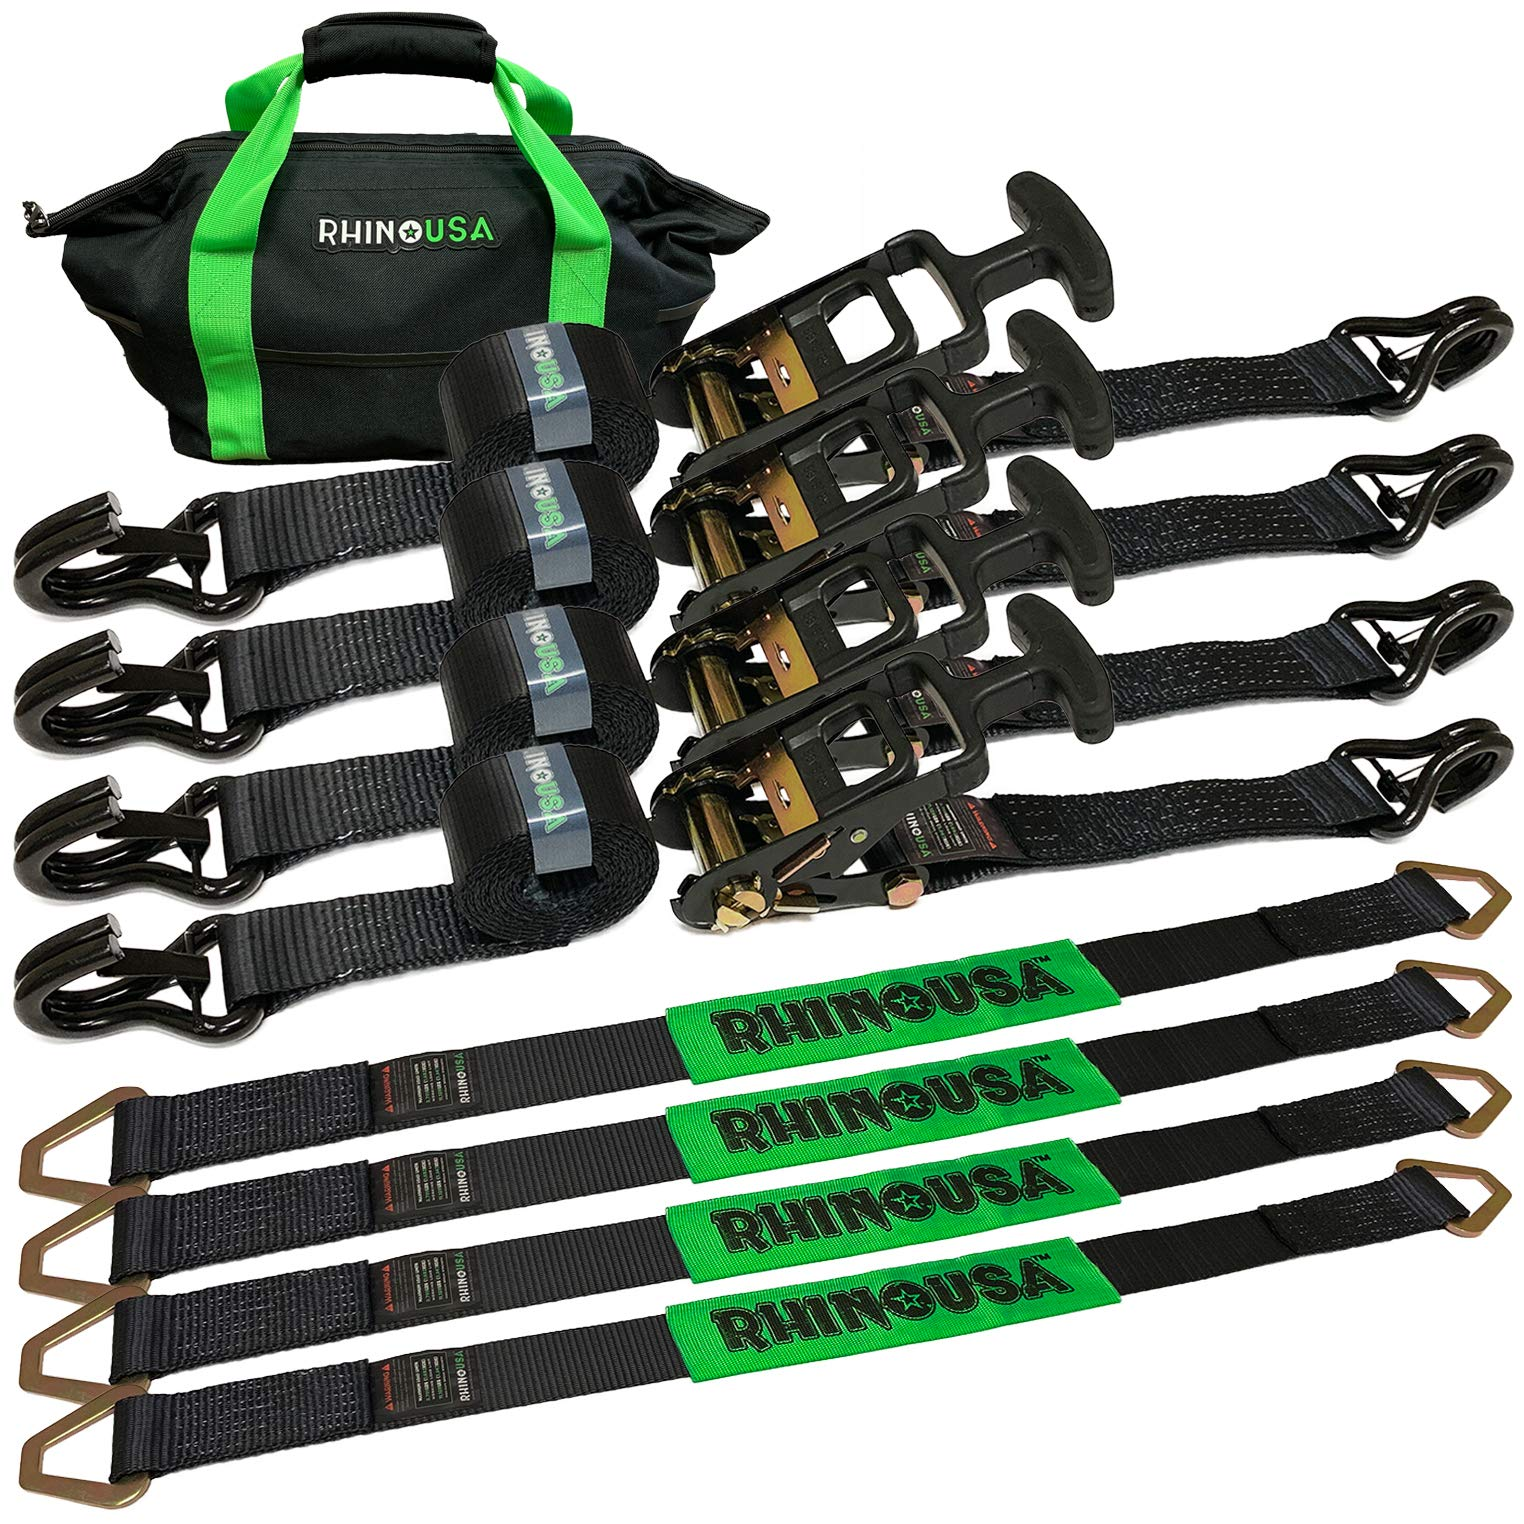 Rhino USA Heavy Duty Vehicle Tie Down Kit - 11,128lb Guaranteed Break Strength - Use for Car, Truck, UTV - (4) Premium 2'' x 8' Ratchet Straps with Padded T-Handles + (4) Axle Strap Tie Downs